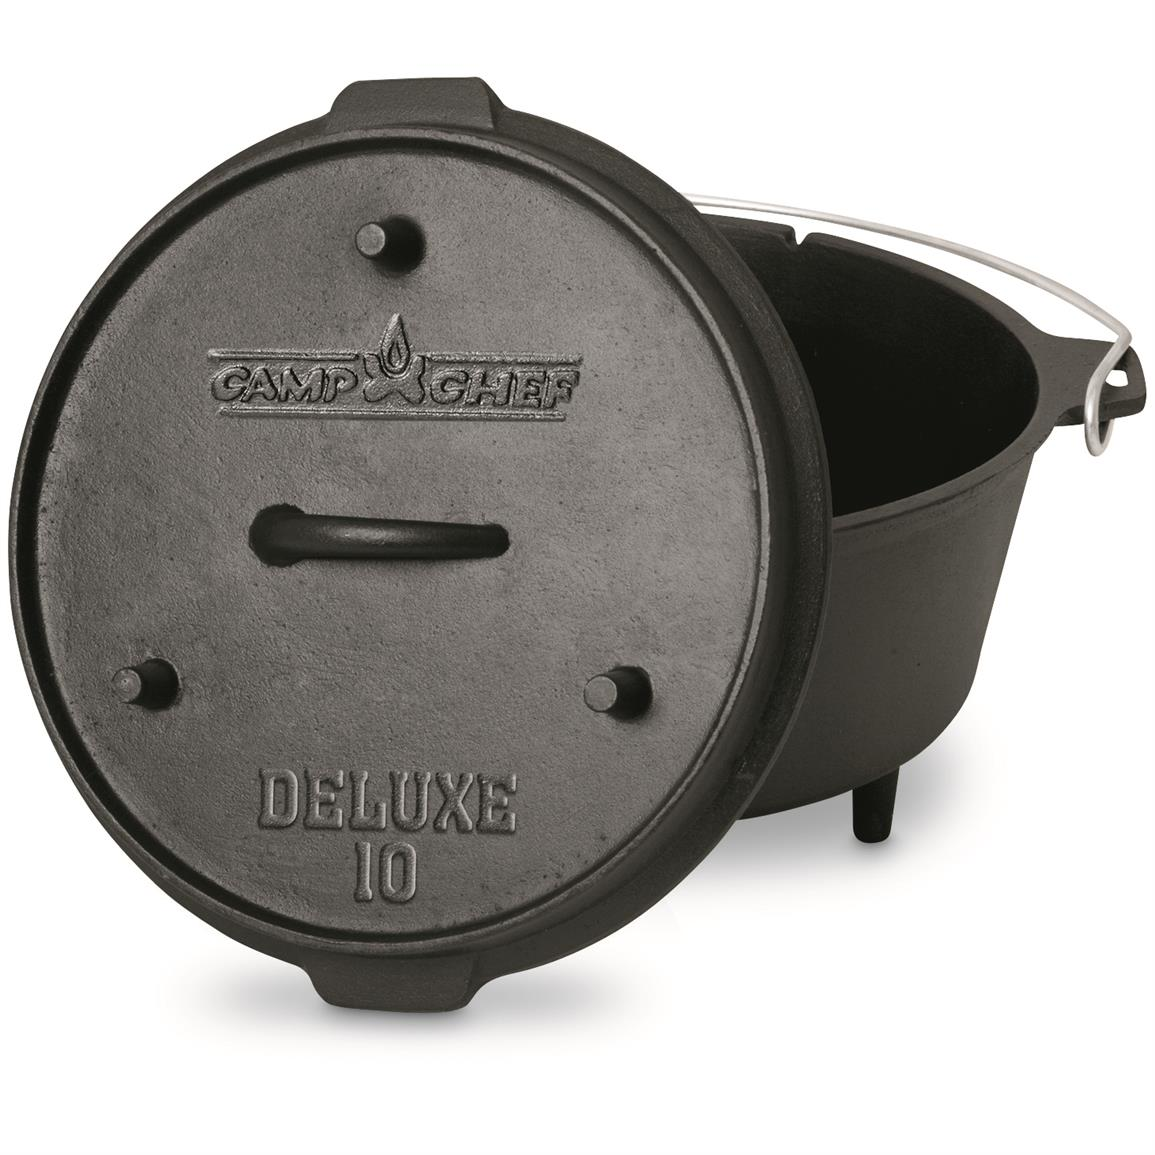 "Camp Chef 10"" 6 Quart Deluxe Cast Iron Dutch Oven"